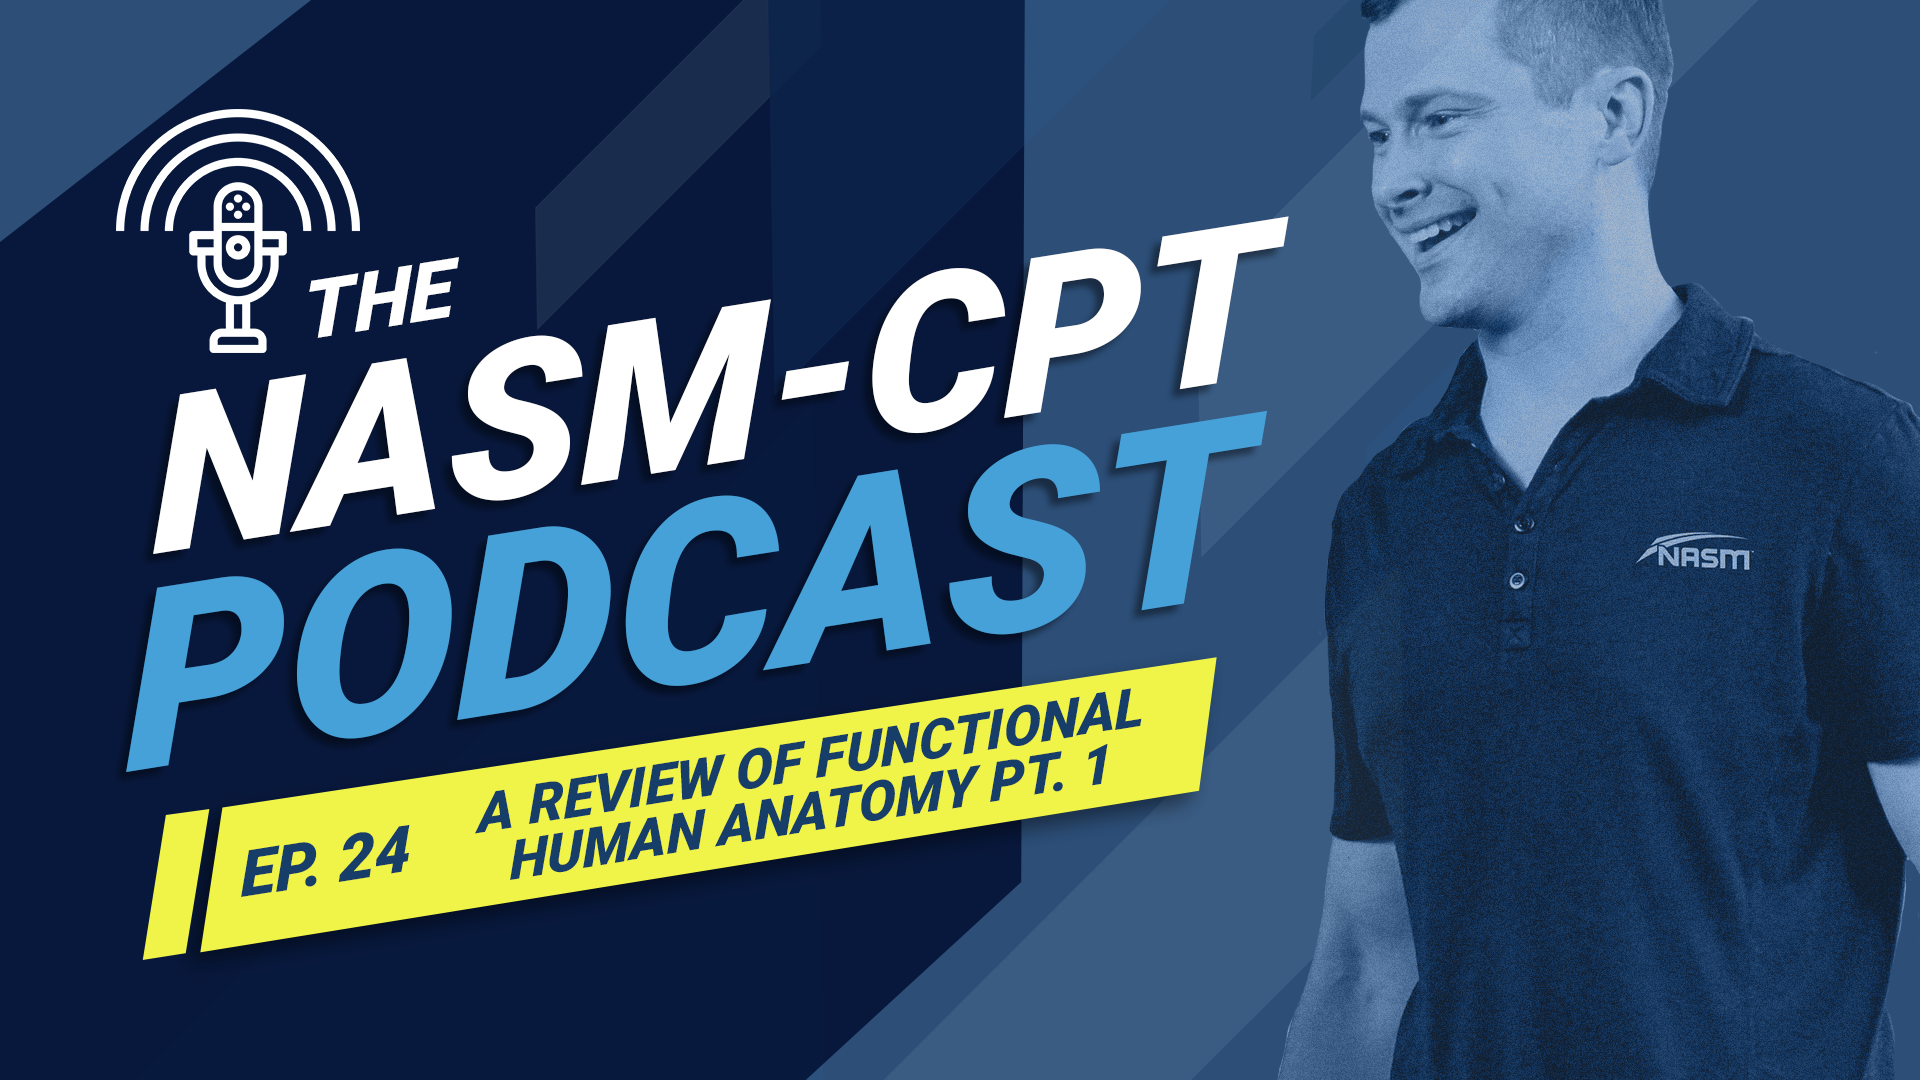 NASM-CPT Podcast Ep. 24